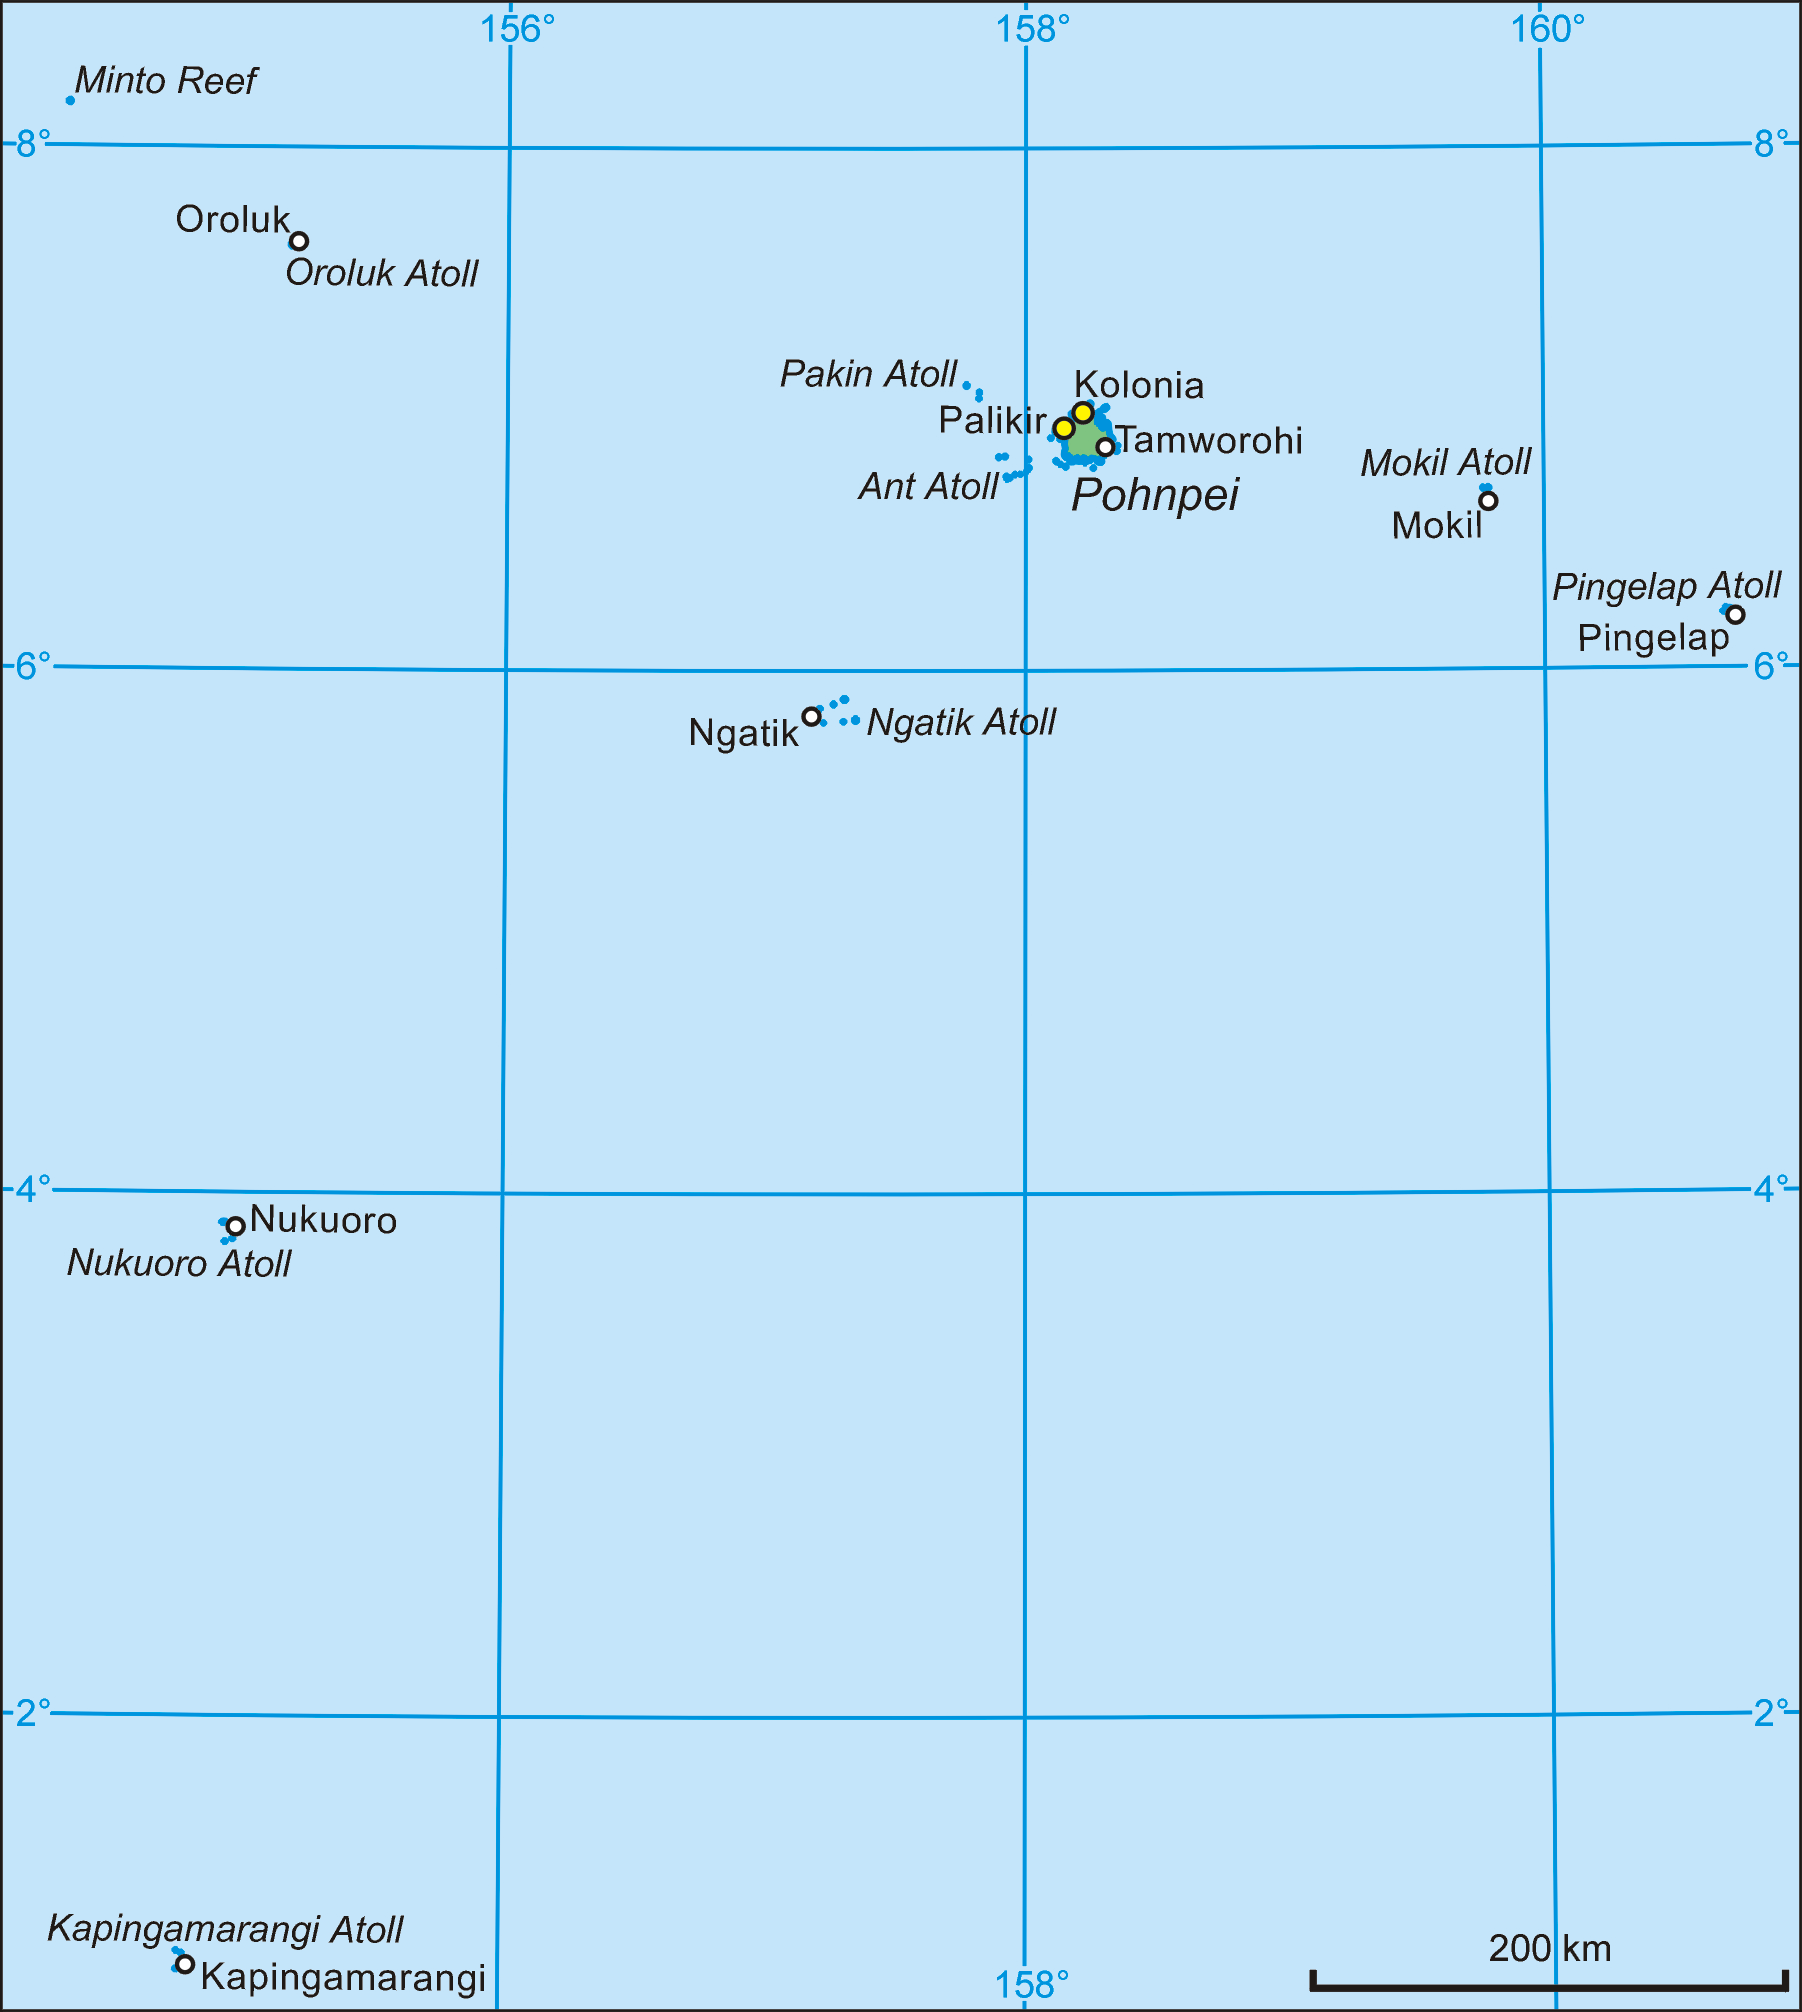 http://upload.wikimedia.org/wikipedia/commons/1/17/Pohnpei.png